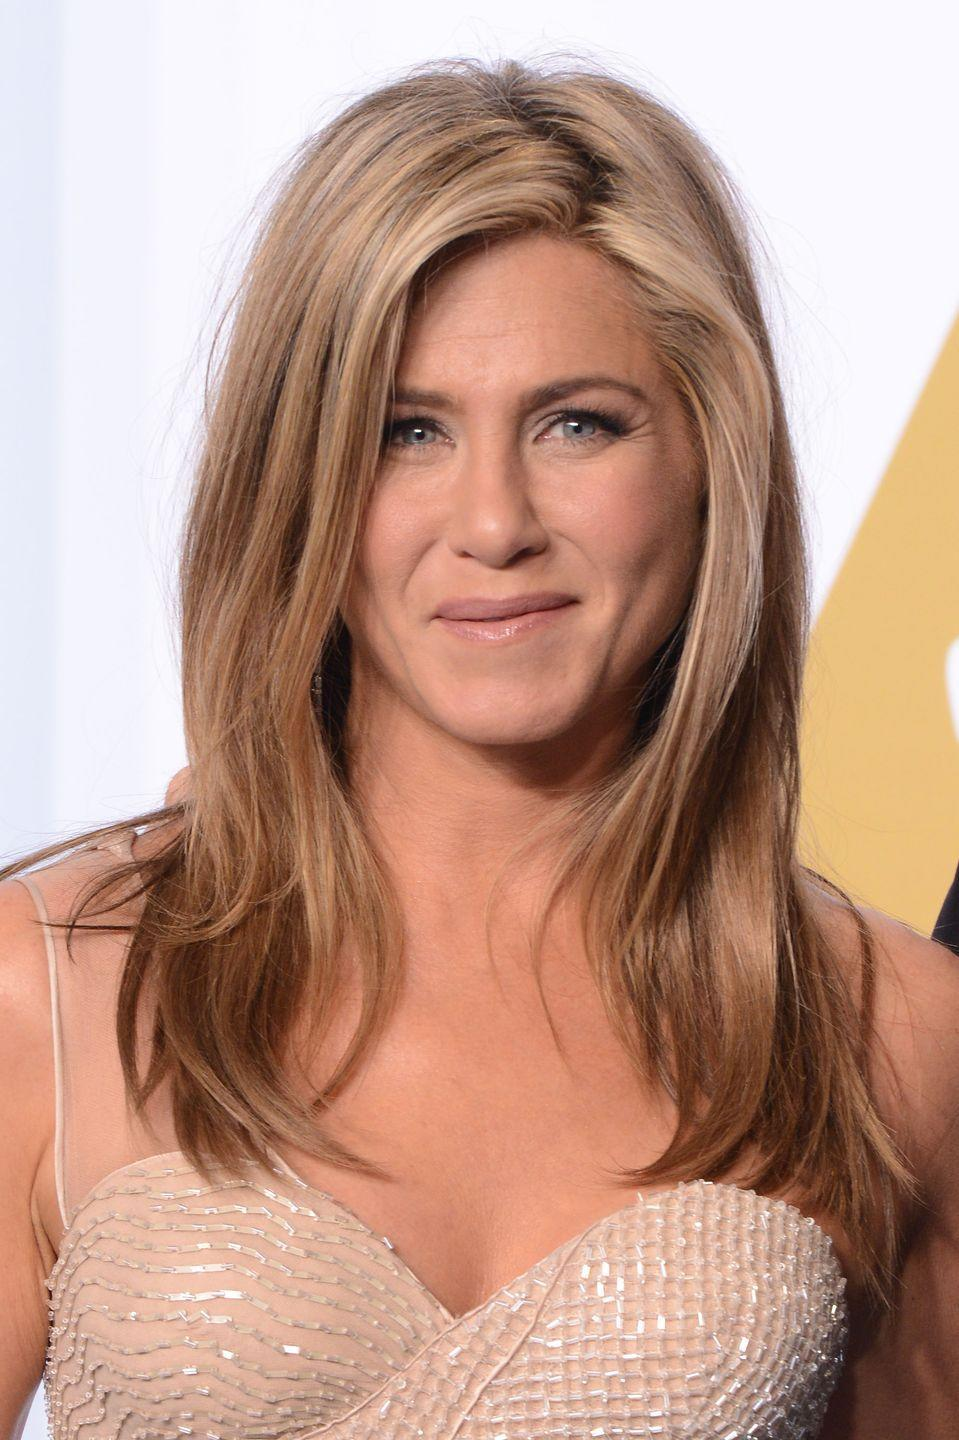 """<p>Jen looked stunning at the 87th Academy Awards thanks to her <a href=""""https://www.goodhousekeeping.com/beauty/hair/news/g2443/blonde-hair-color-ideas/"""" rel=""""nofollow noopener"""" target=""""_blank"""" data-ylk=""""slk:pastel-y blonde hair"""" class=""""link rapid-noclick-resp"""">pastel-y blonde hair</a> that paired beautifully with her sparkly champagne gown.</p>"""